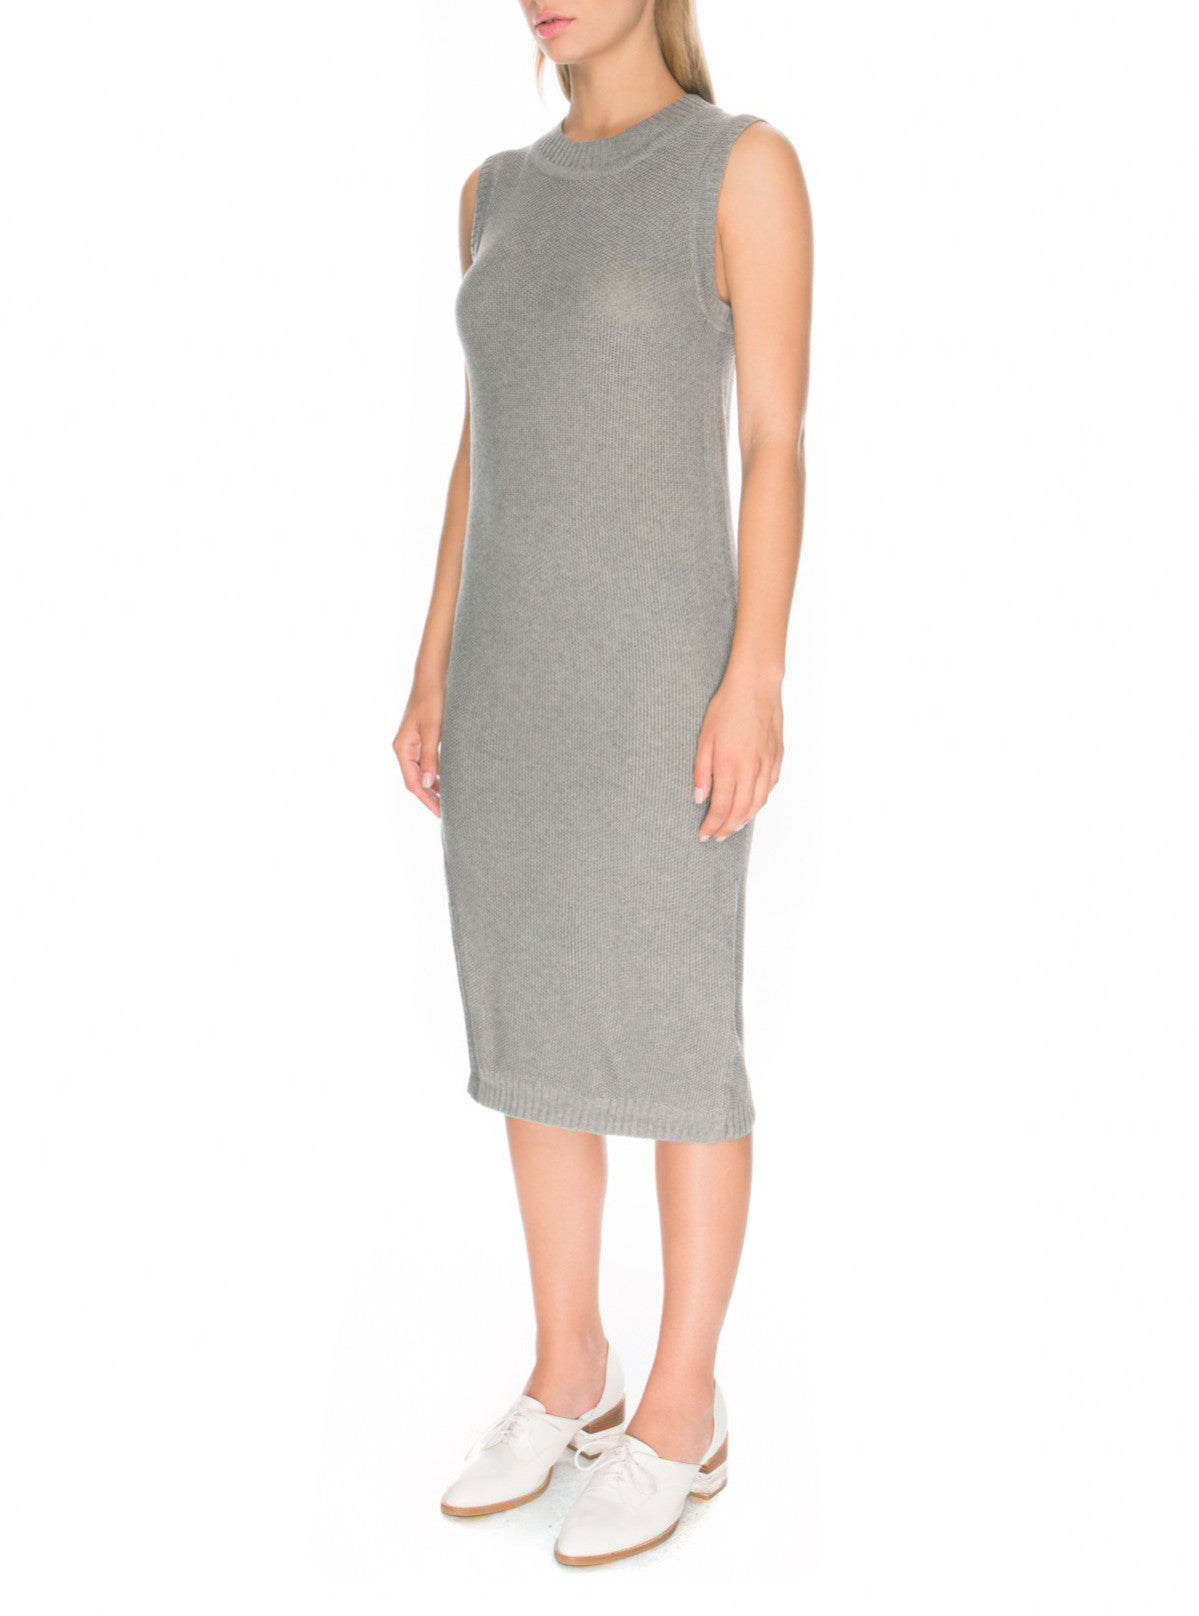 Cheap Talk Knit Dress - PRADEGAL